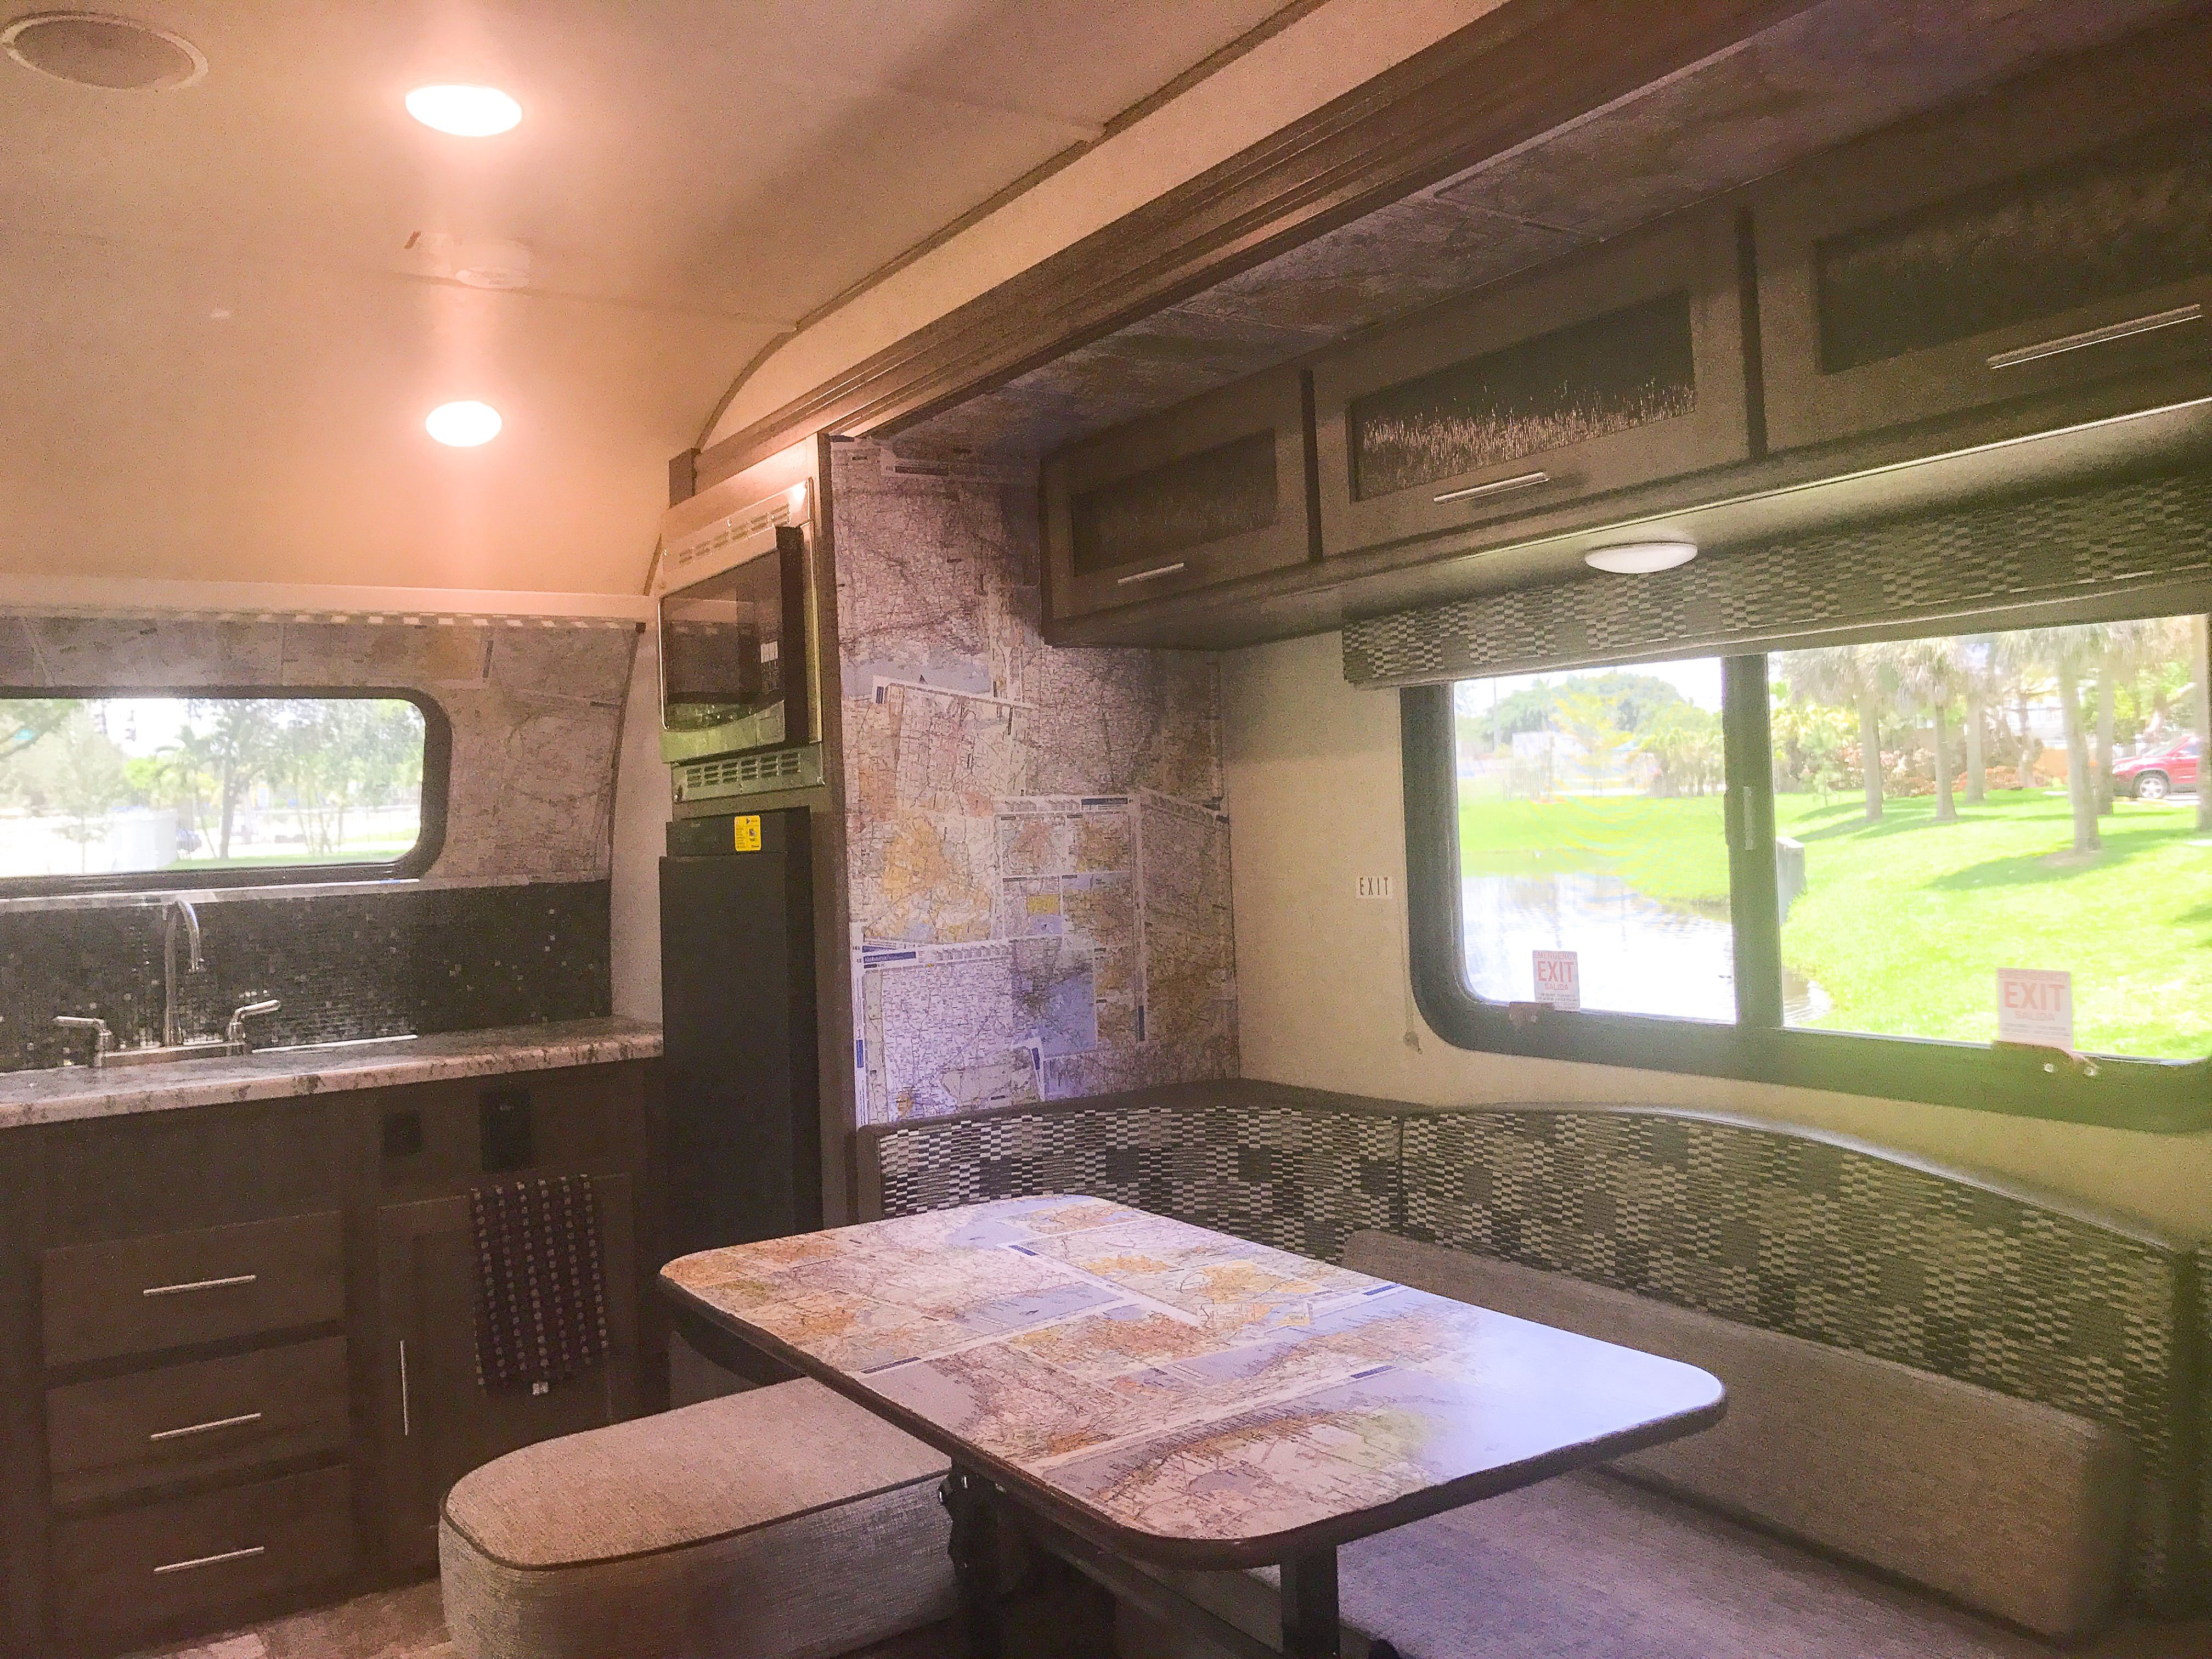 Now THAT'S a kitchen you can cook up a great camp meal in!  Fully stocked with slow cooker, blender, convection oven, microwave, keurig, pots and pans, everything you need!  Upgraded tile kitchen backsplash and decoupage map wallpaper by yours truly! -Actual travel trailer setup!